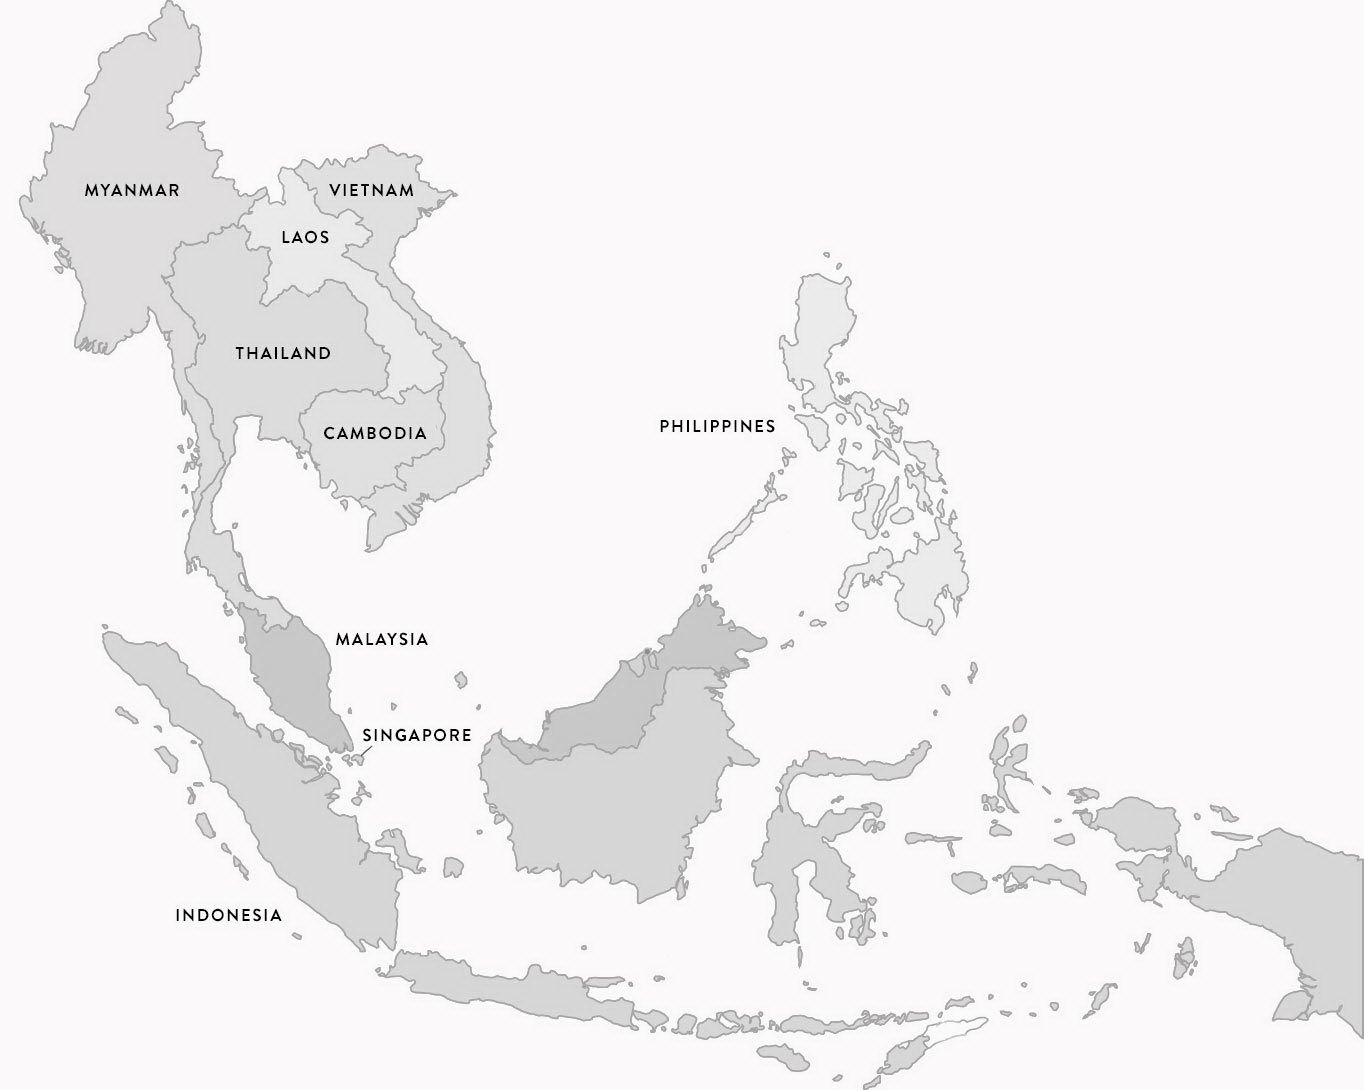 Asean Member Counties Map Asean Countries Flags Maps Emblems Island Info The Full Moon Party Experts Offer Quality Tours And Acti Peta Pendidikan Gambar